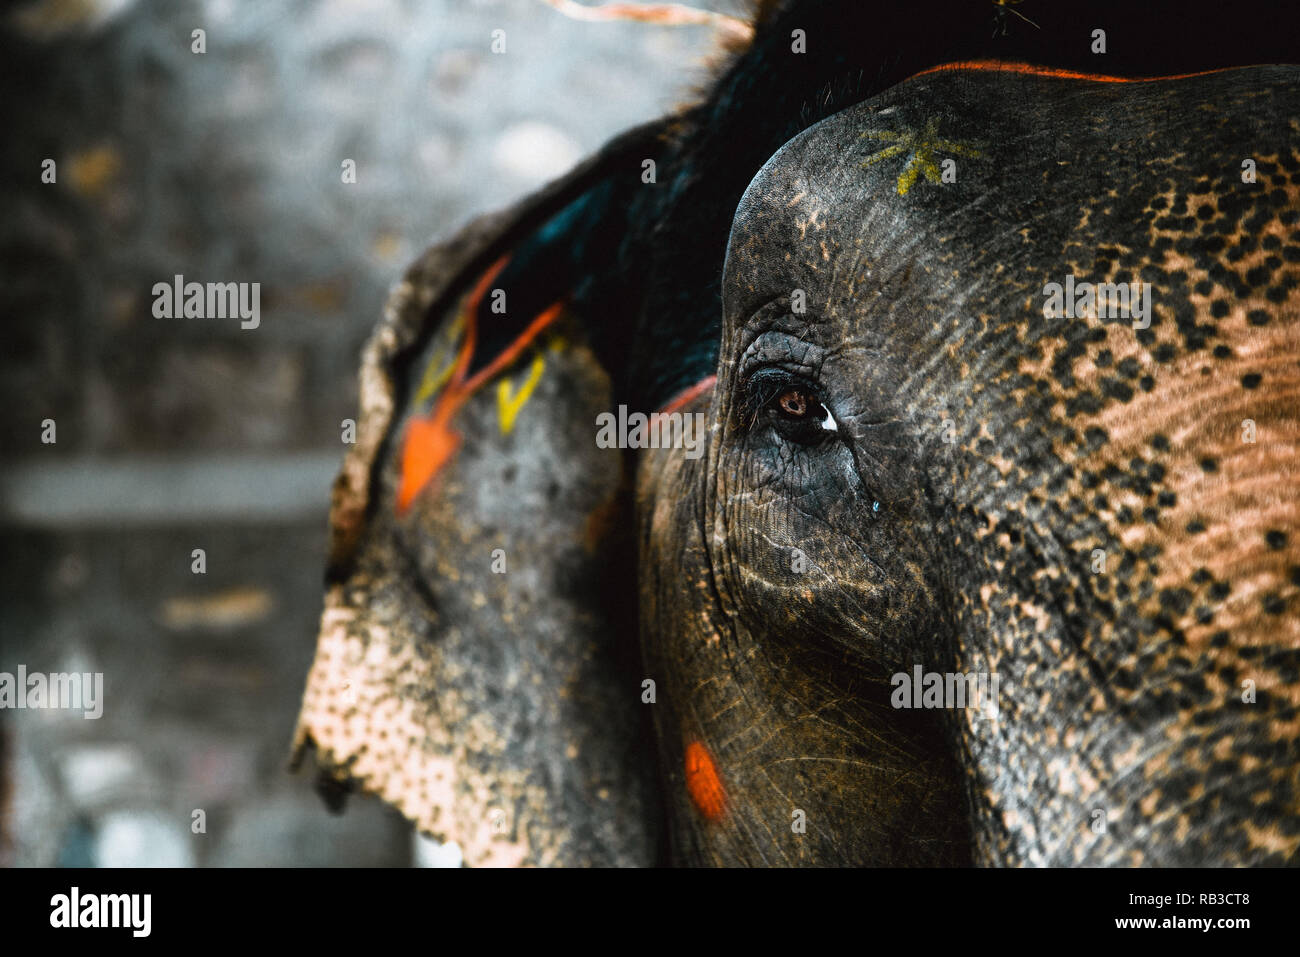 Close-up of an eye of an elephant in captivity in India Jaipur with paintings on elephant skin and a tear running down the elephant's eye - Stock Image